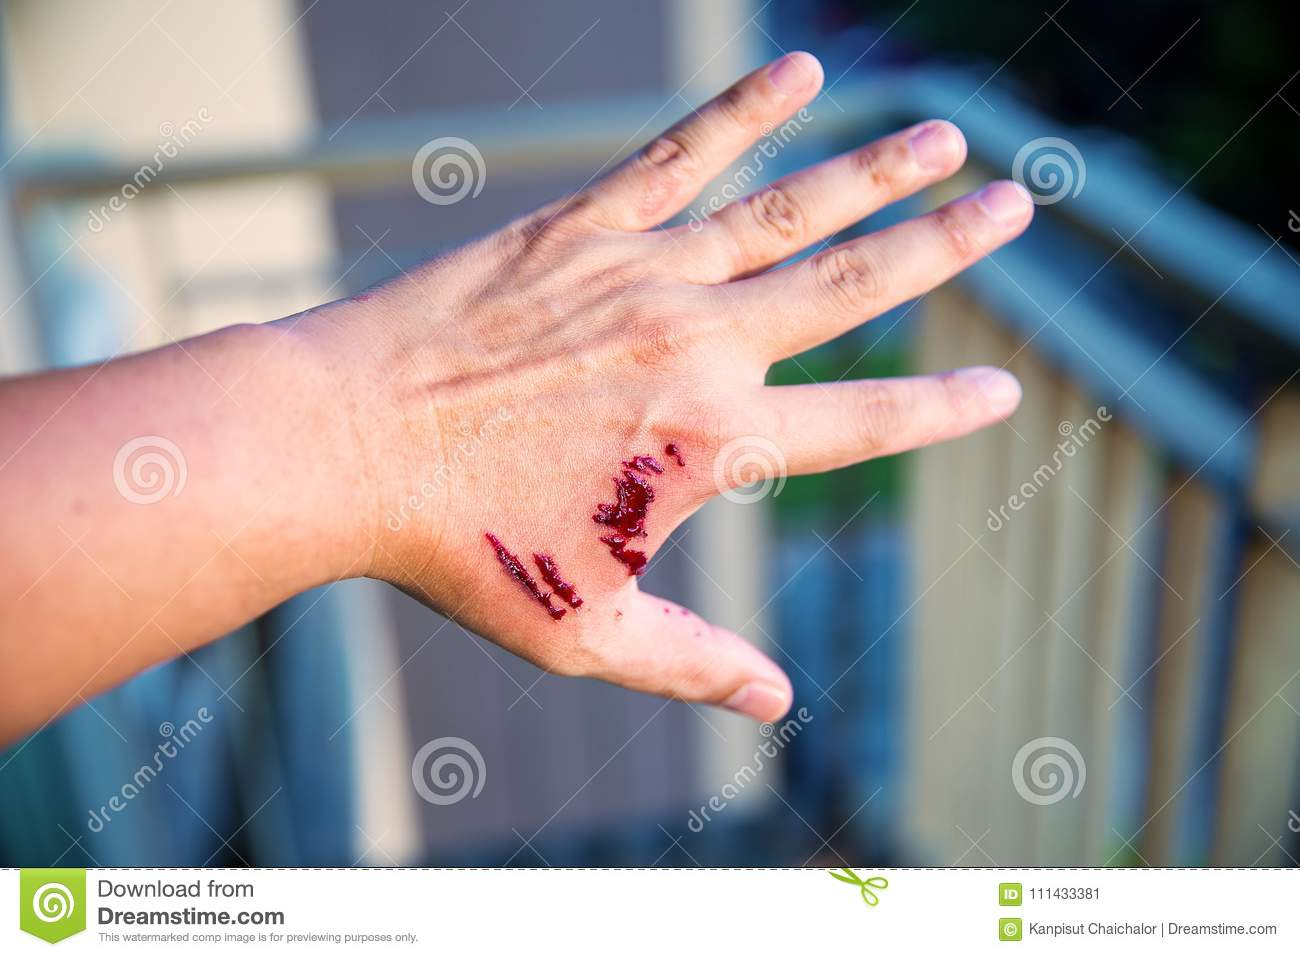 Focus dog bite wound and blood on hand. Infection and Rabies concept.